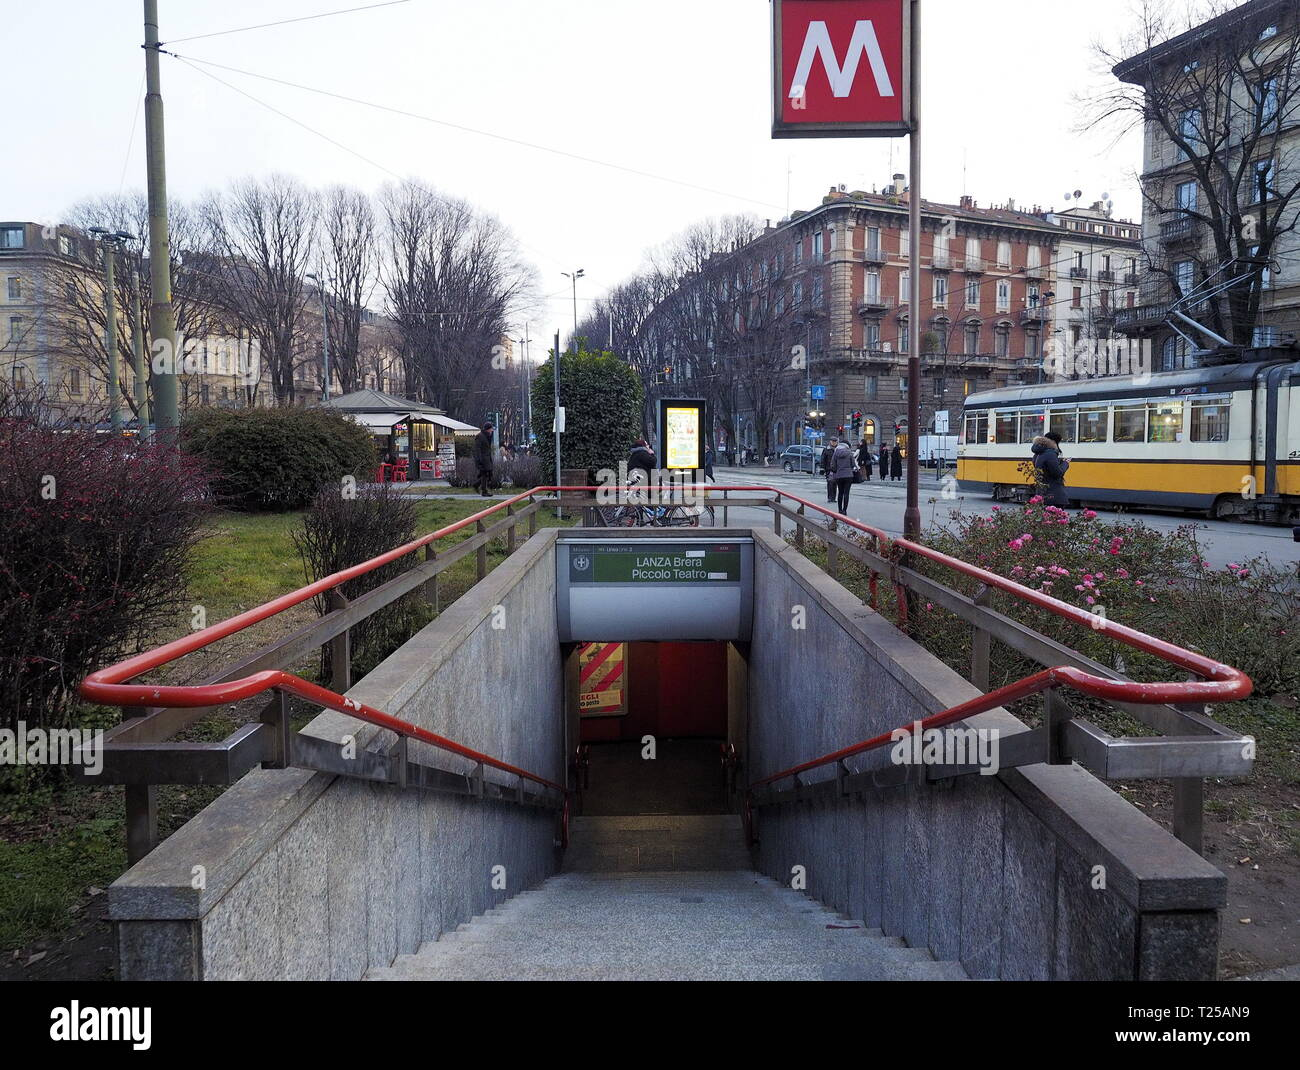 MILANO, Italy. 29 January 2019: Entrance to Lanza metro station in Milan. Lanza is a station on the line 2 of Milan underground, the green line. - Stock Image